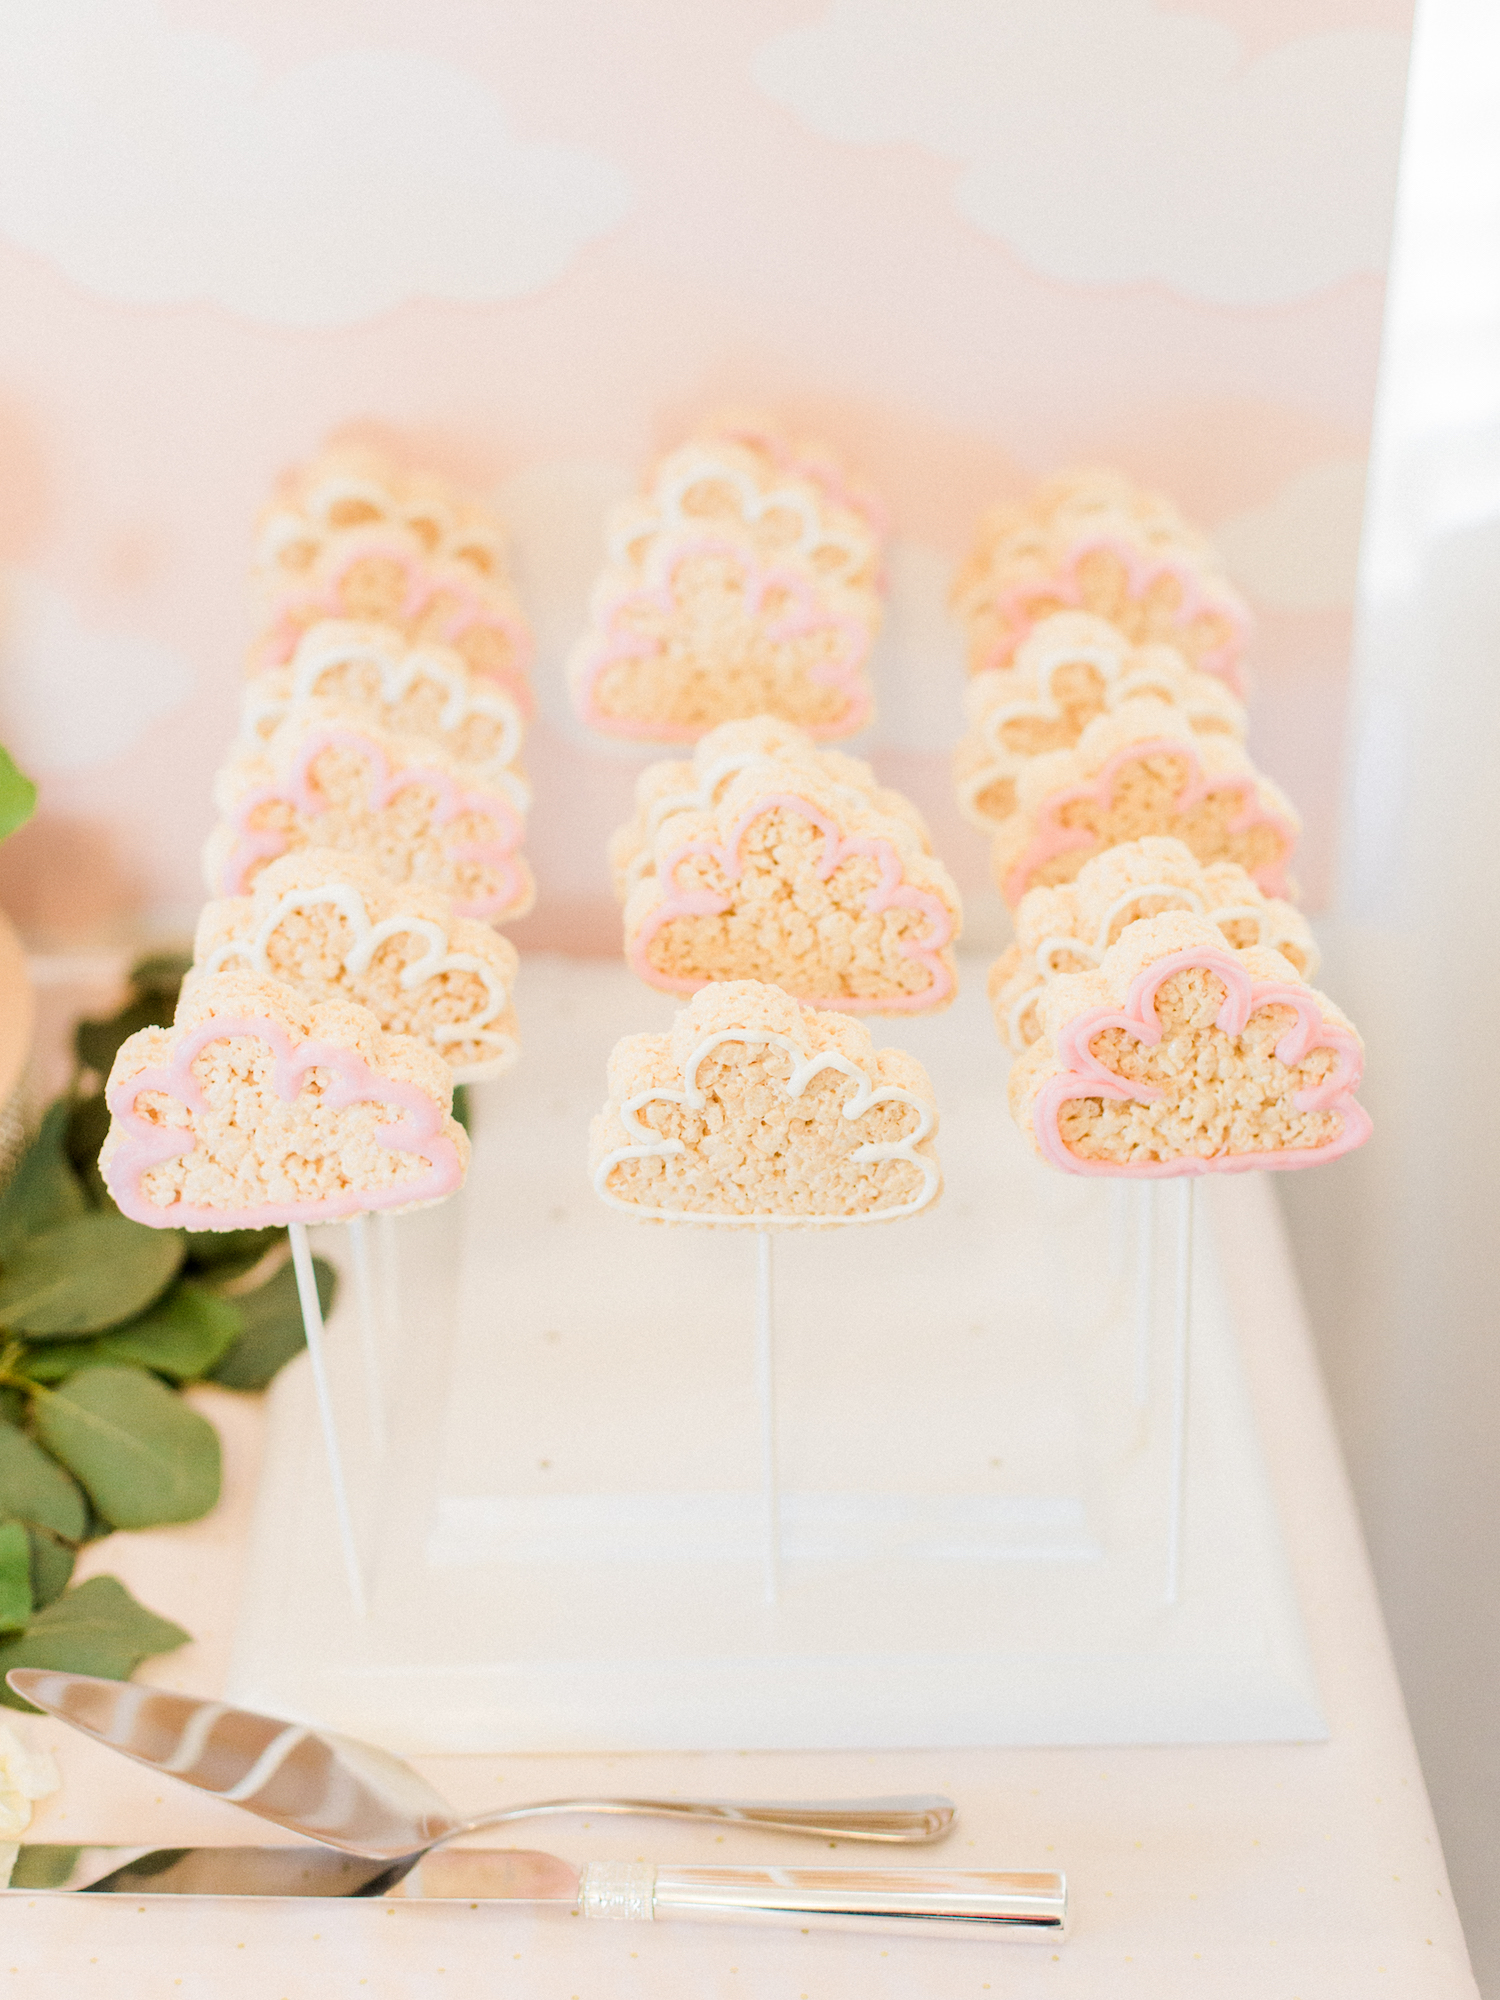 Cloud shaped cookies and rice krispie treats. Travel themed baby shower.